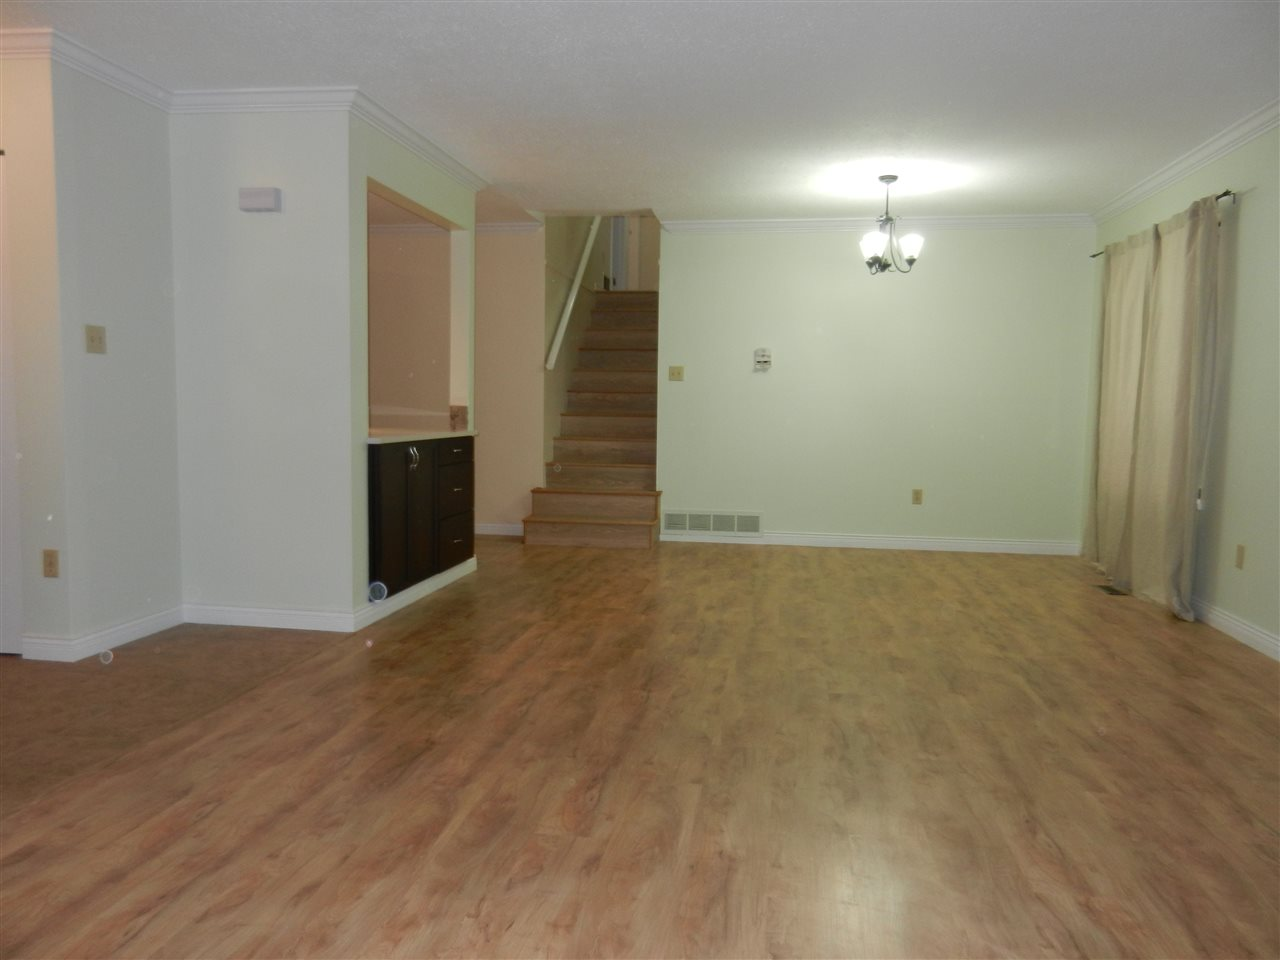 Photo 3: 3164 FREY Place in Port Coquitlam: Glenwood PQ House for sale : MLS® # R2113902